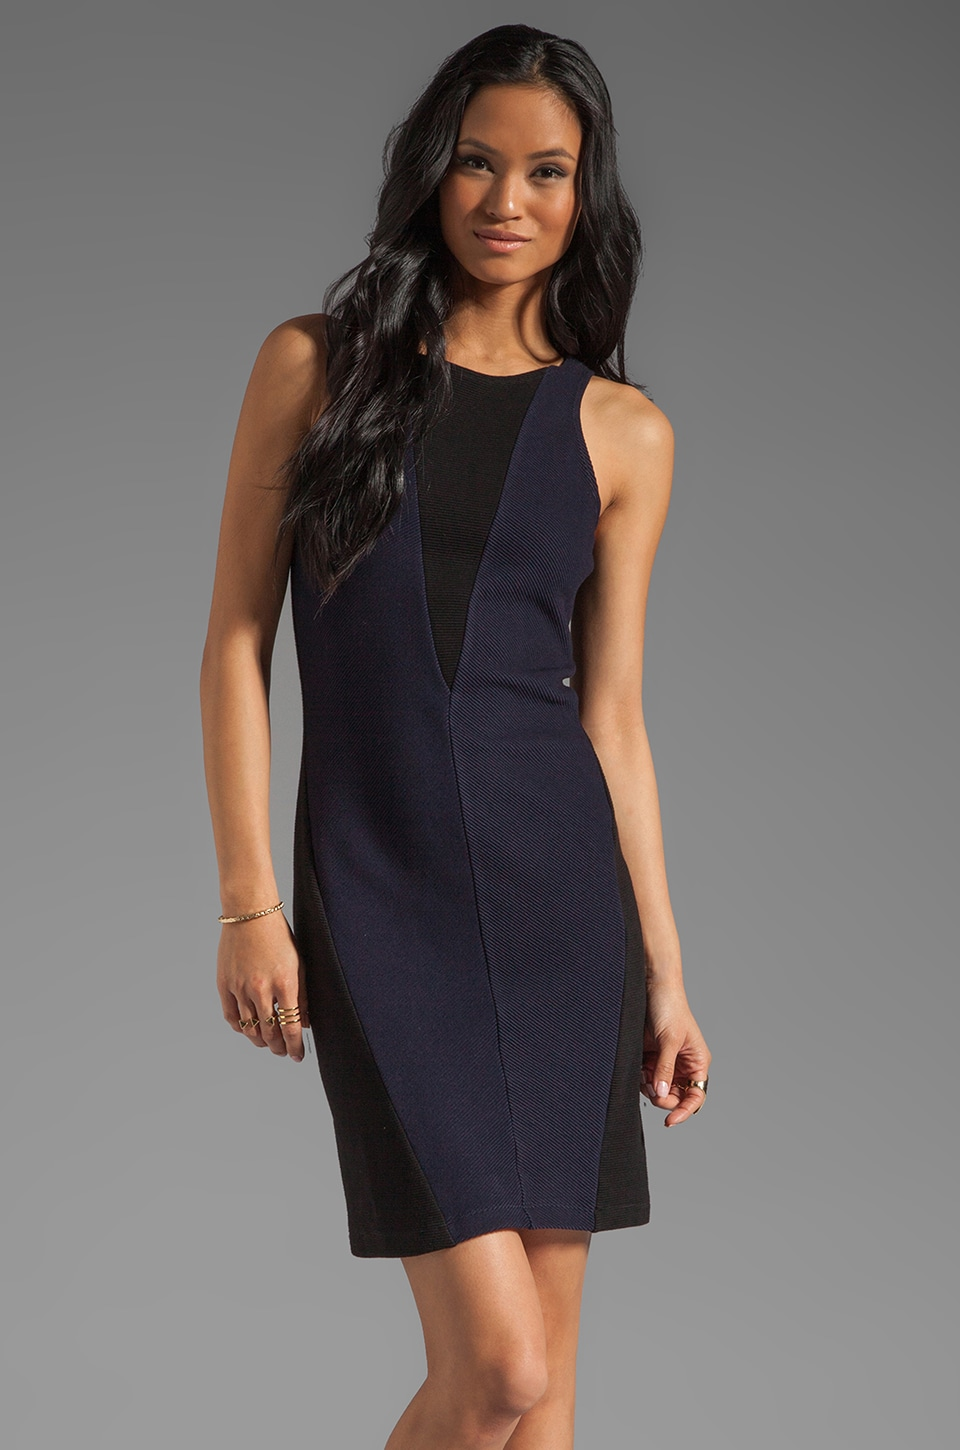 Kain Stina Dress in Navy/Black Combo